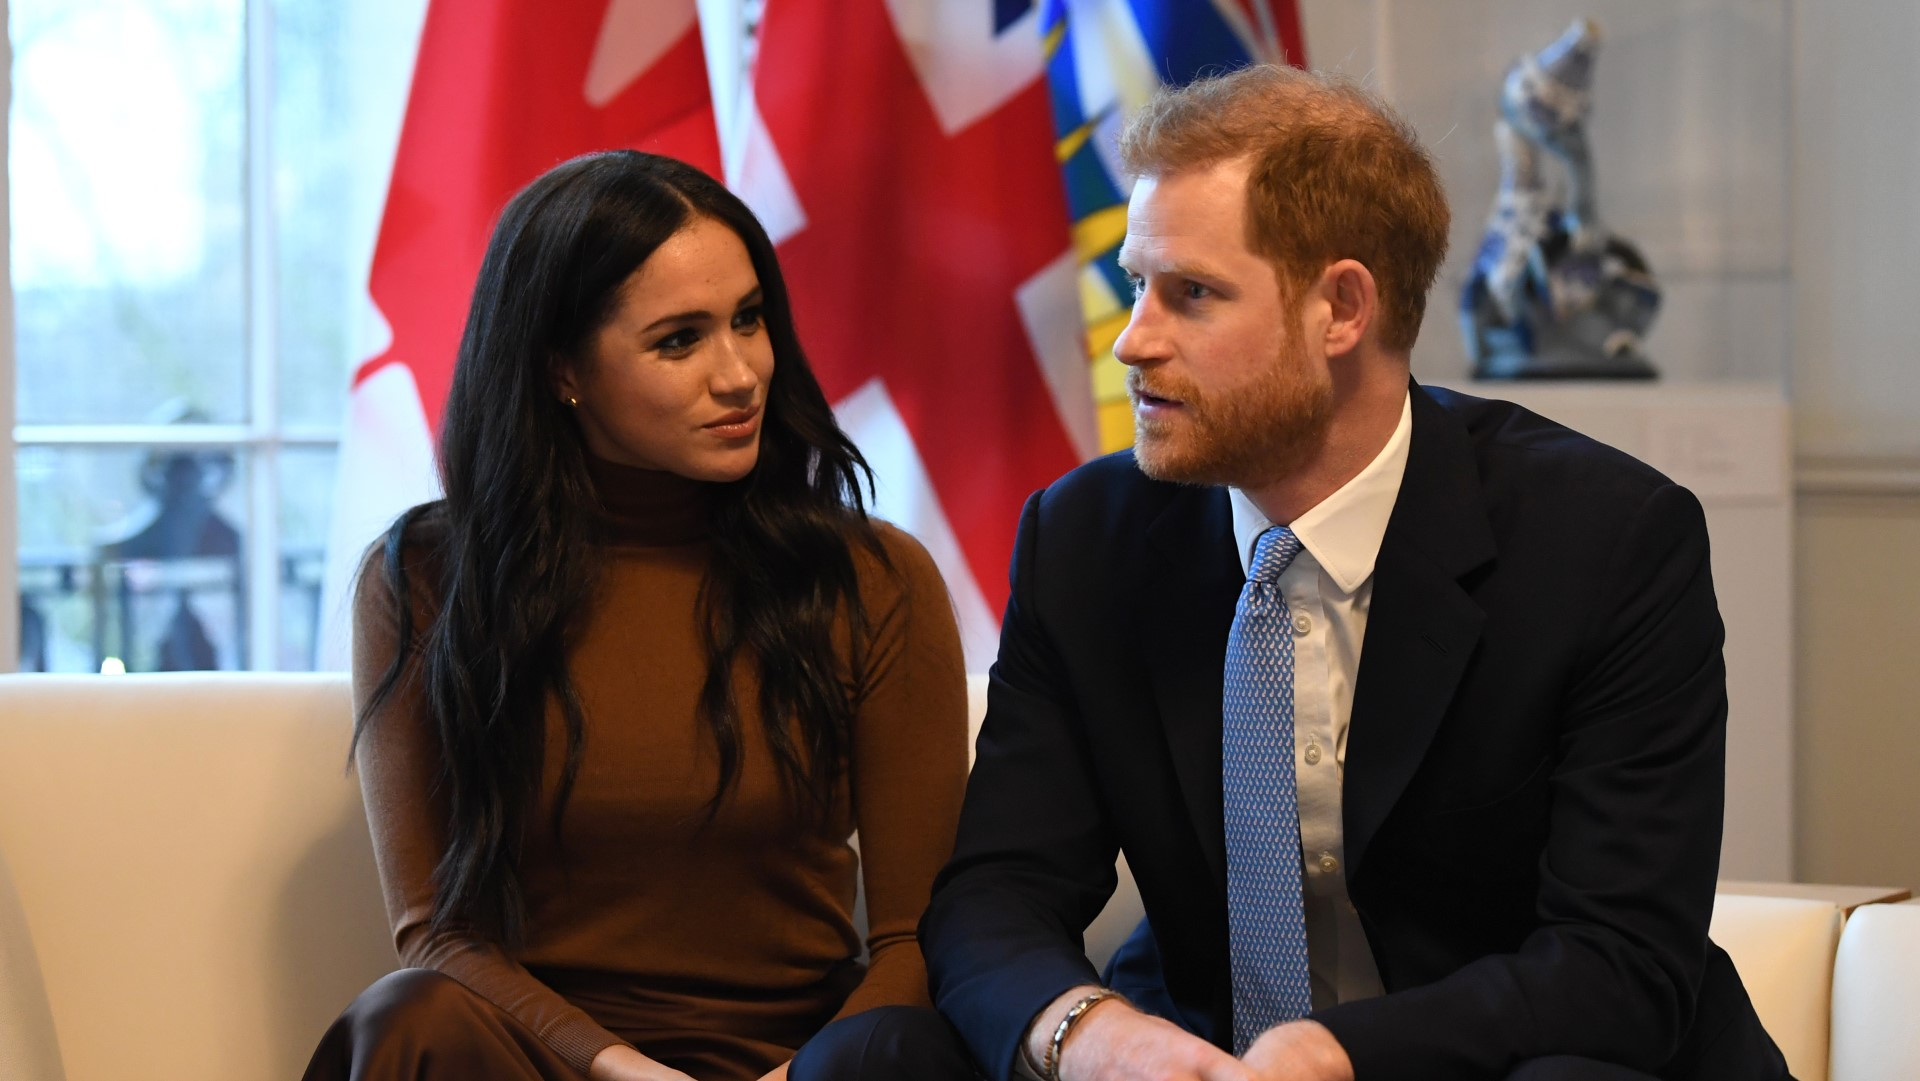 When the royal crisis hit the press: Here's what the media said about 'Megxit'